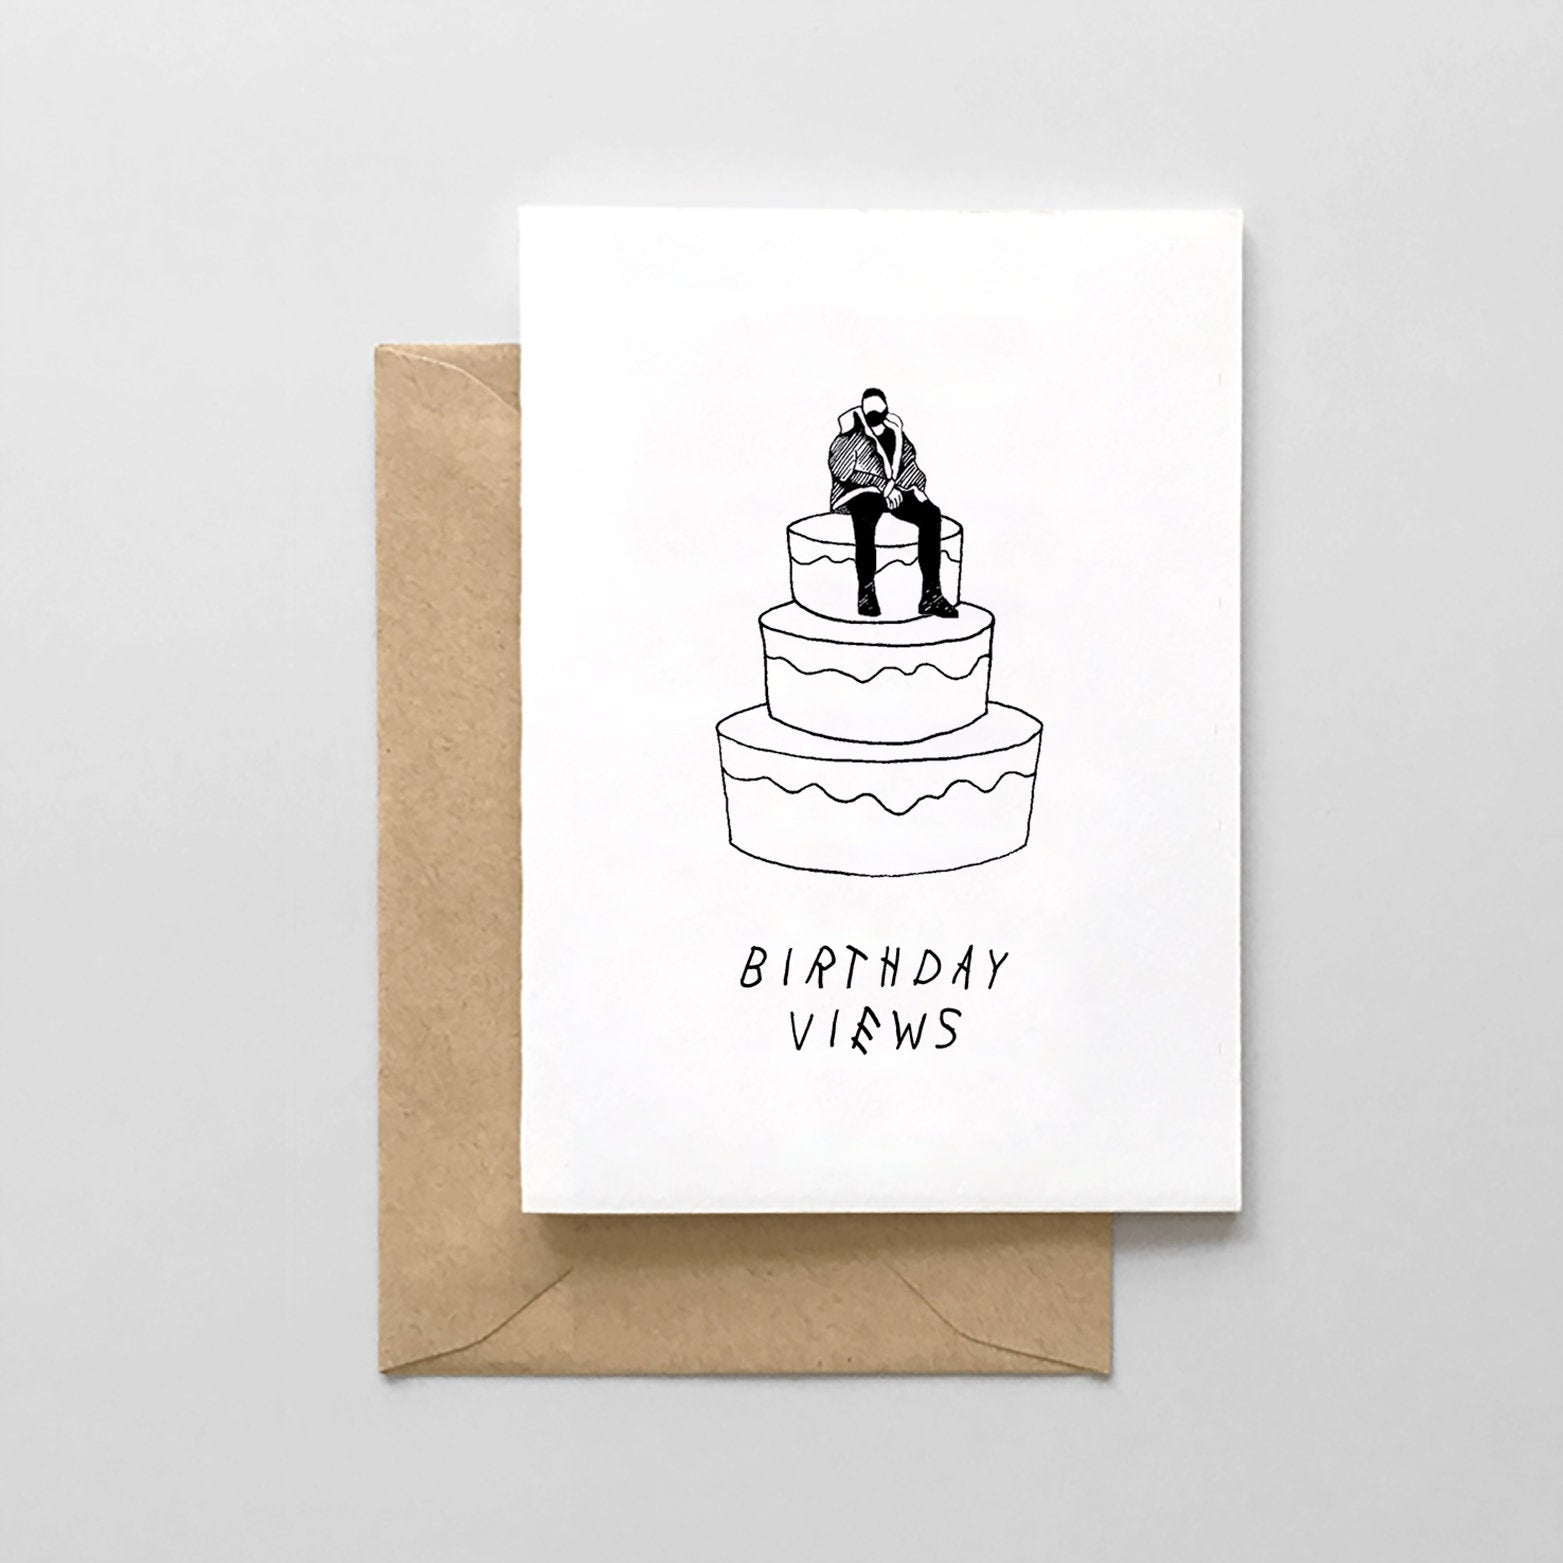 Drake Birthday Views Card